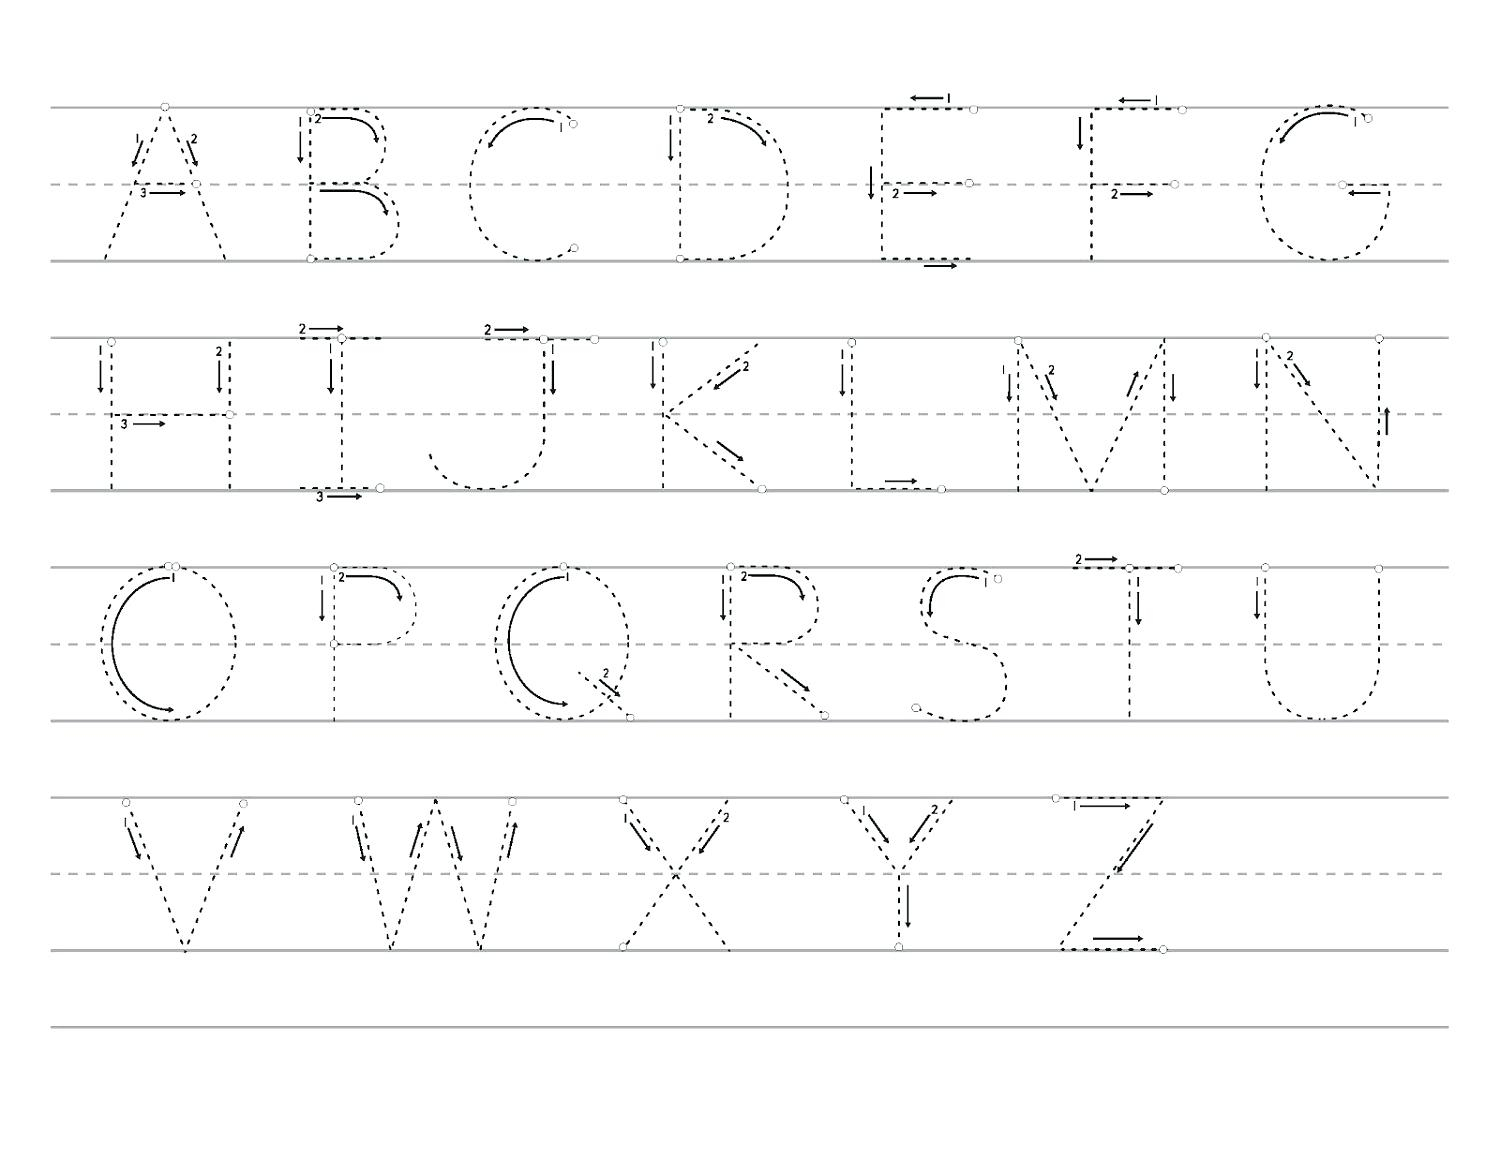 Uppercase Alphabet Tracing | Alphabetworksheetsfree regarding Alphabet Tracing Uppercase